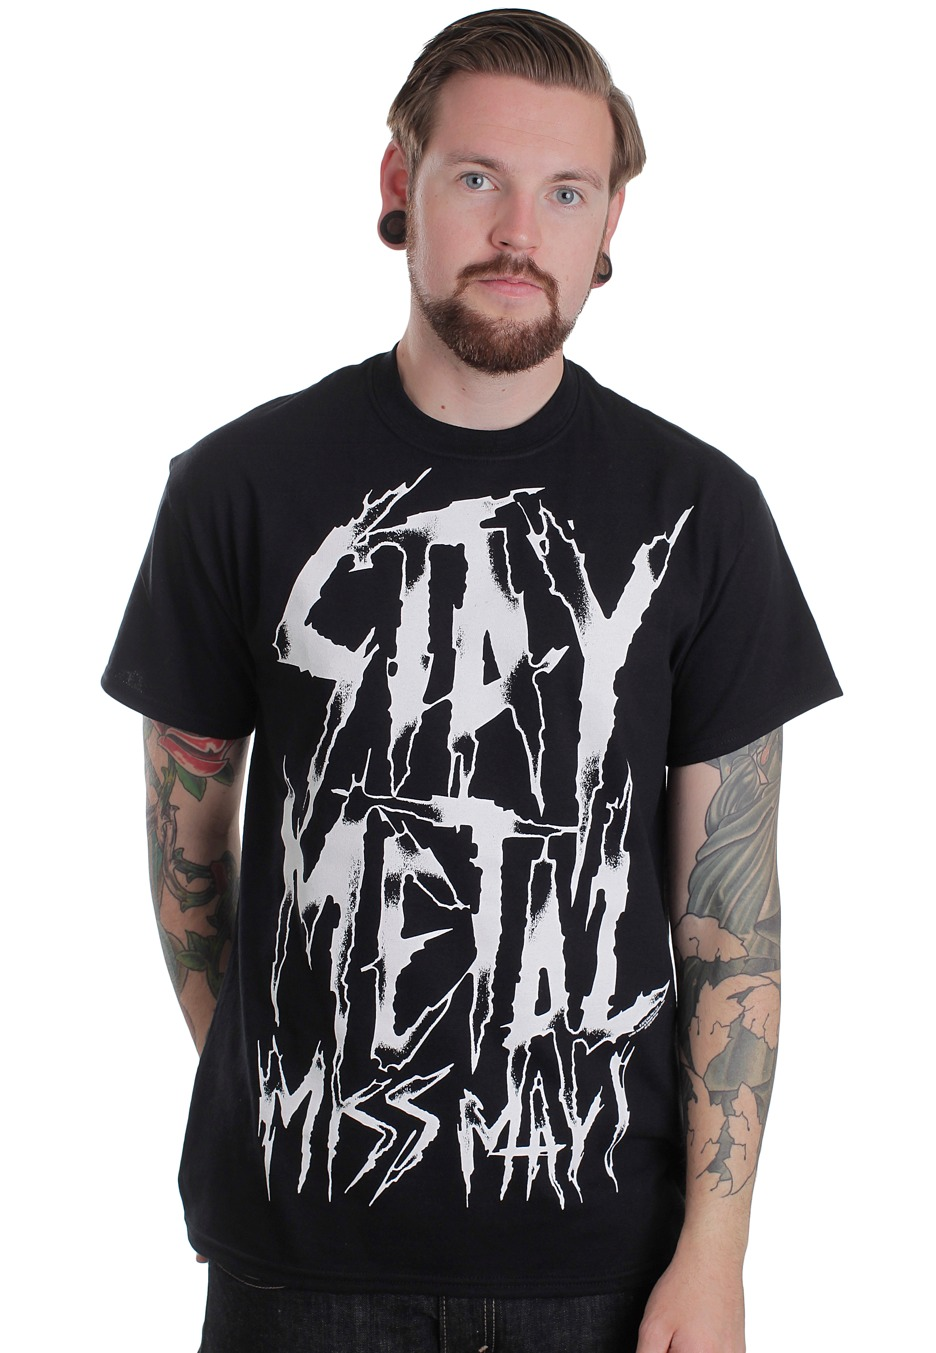 Shop for the latest metal tees, pop culture merchandise, gifts & collectibles at Hot Topic! From metal tees to tees, figures & more, Hot Topic is your one-stop-shop for must-have music & pop culture-inspired merch. Shop Hot Topic today!